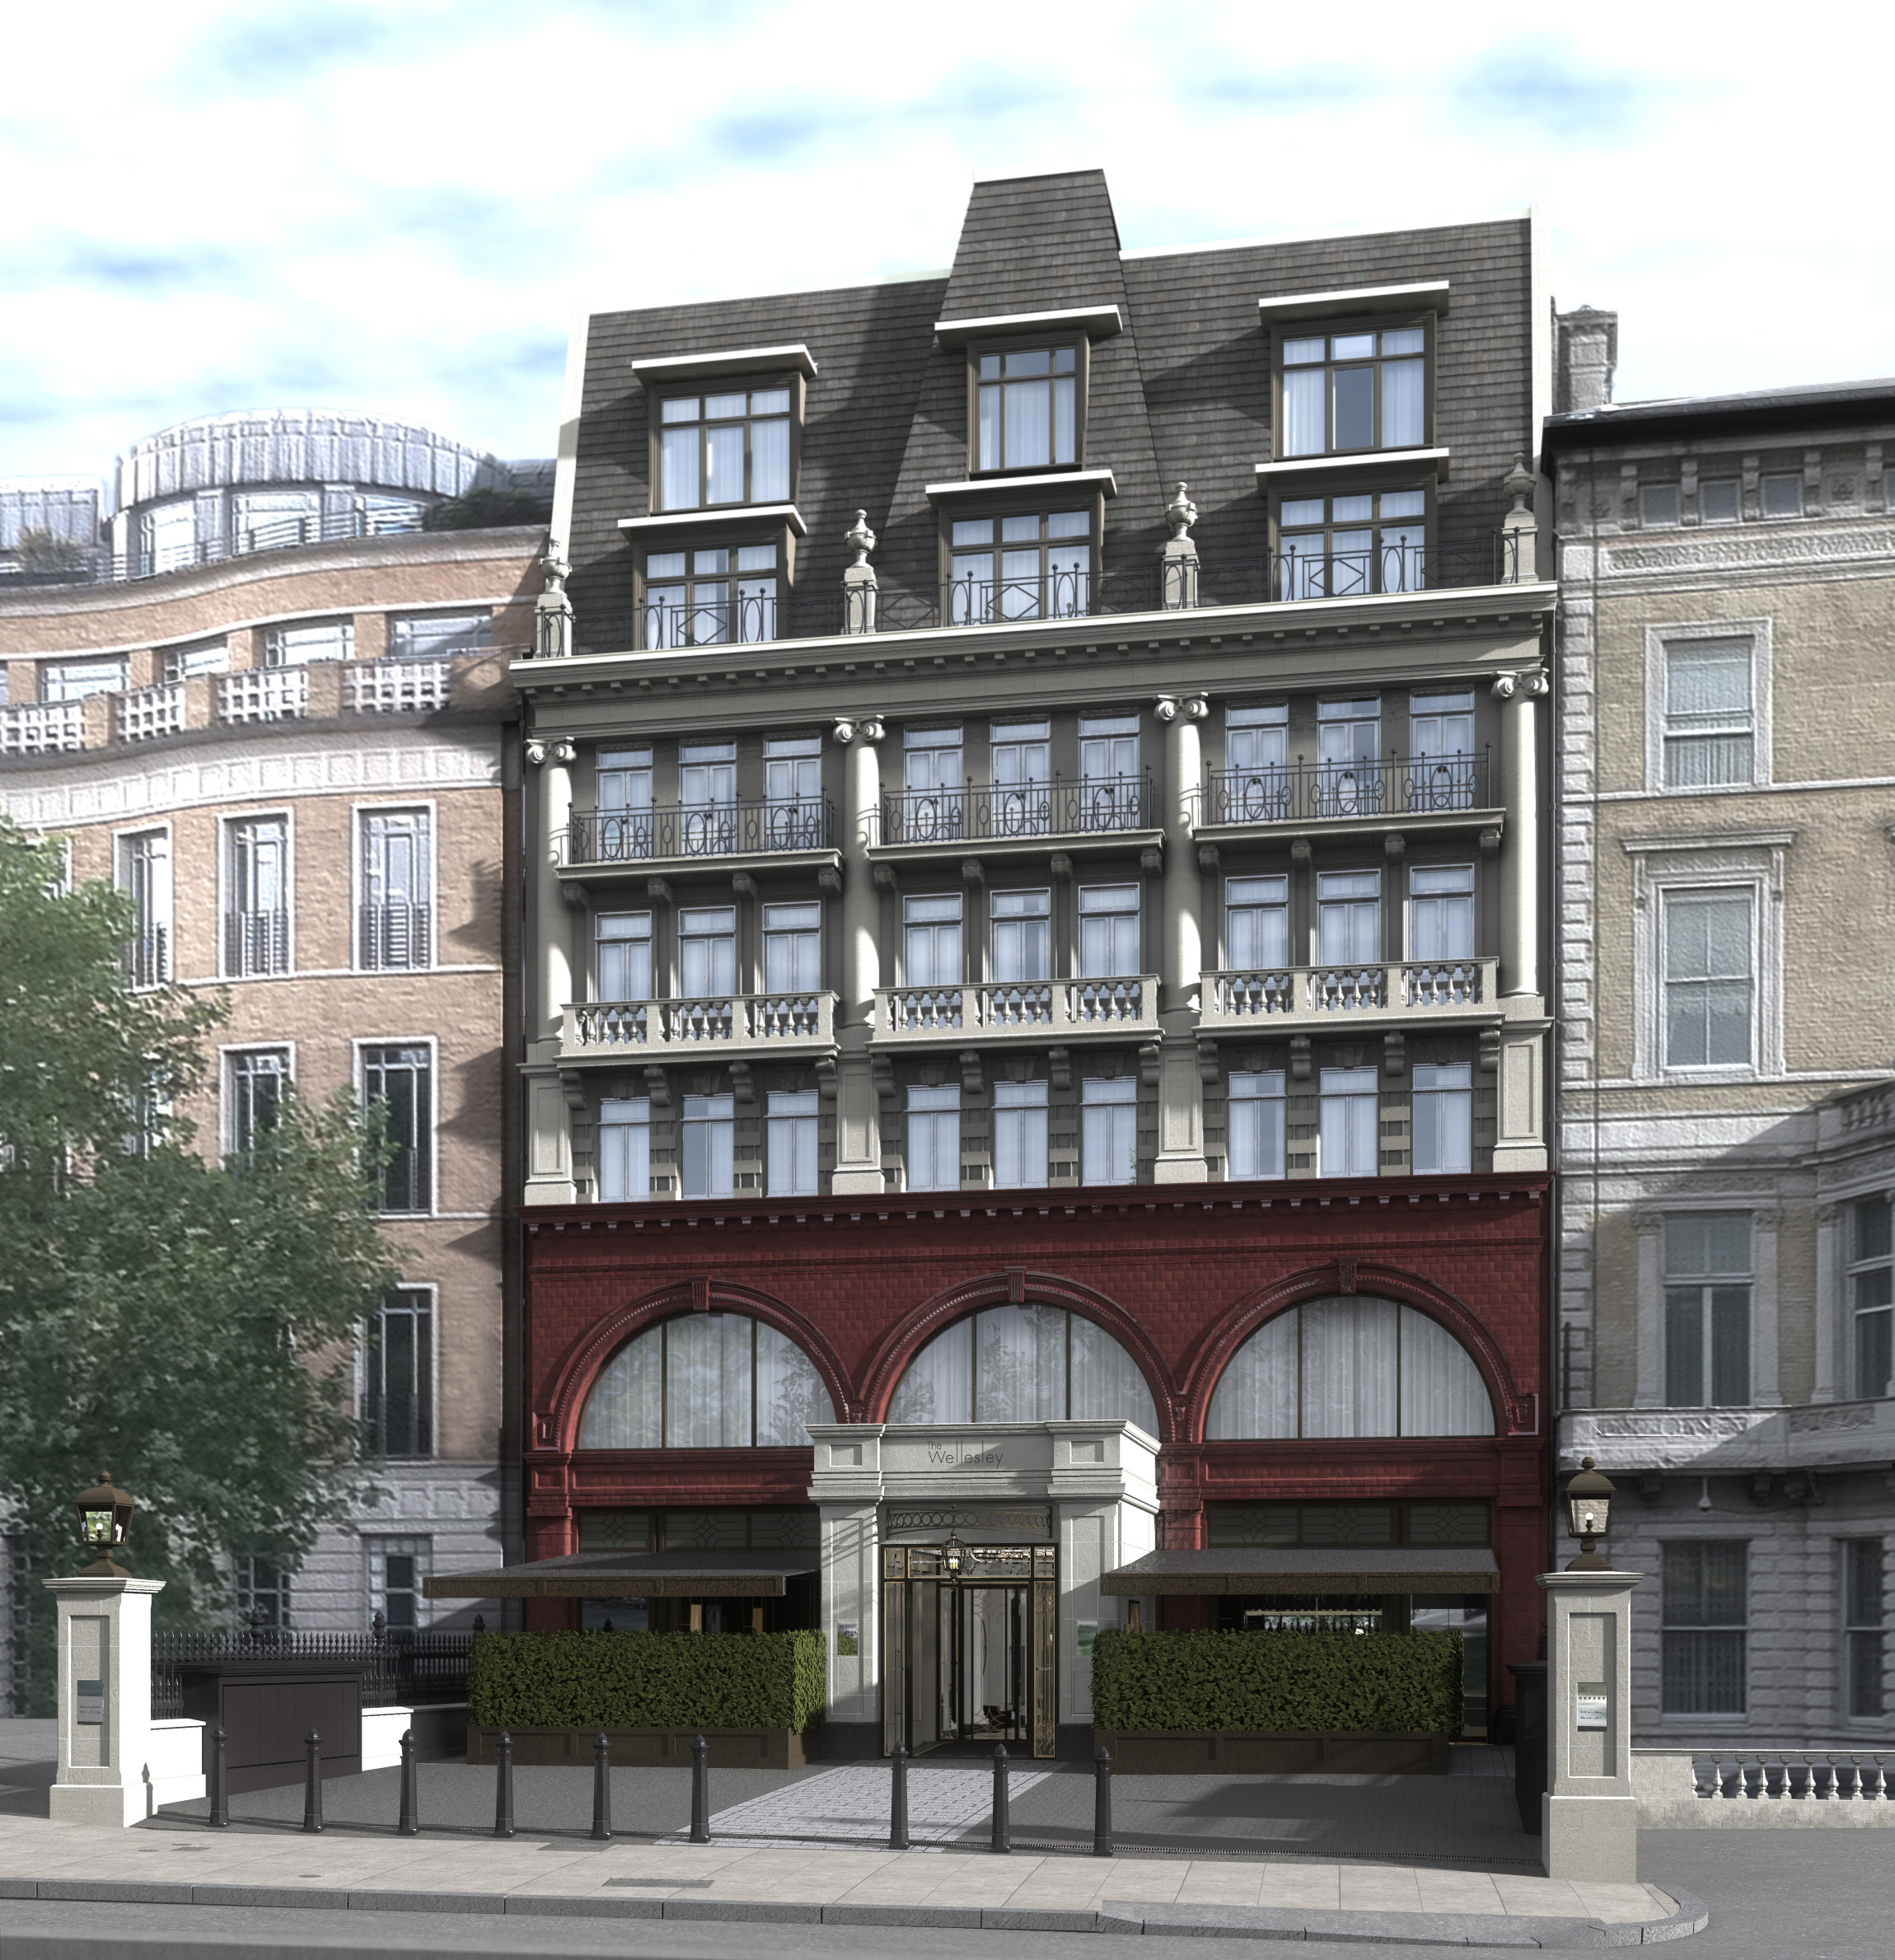 The new wellesley hotel in knightsbridge american girl for The knightsbridge